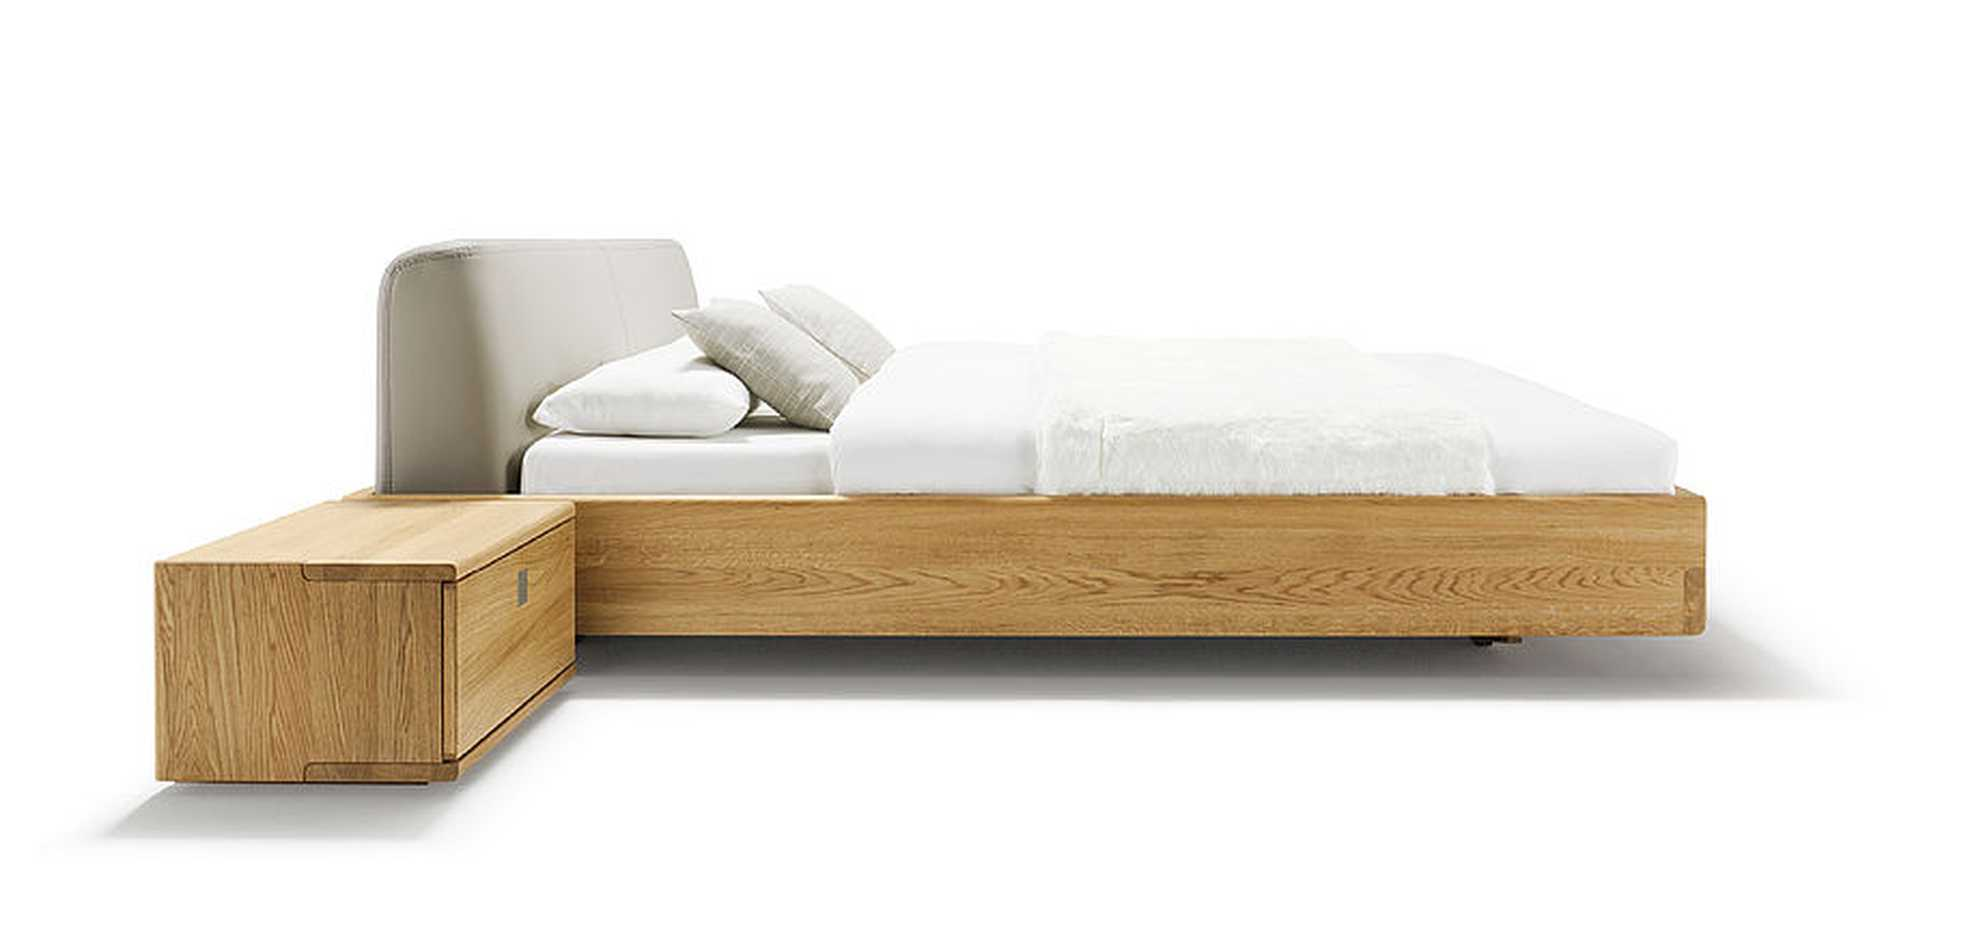 Nox Bed by Team 7 product image 3